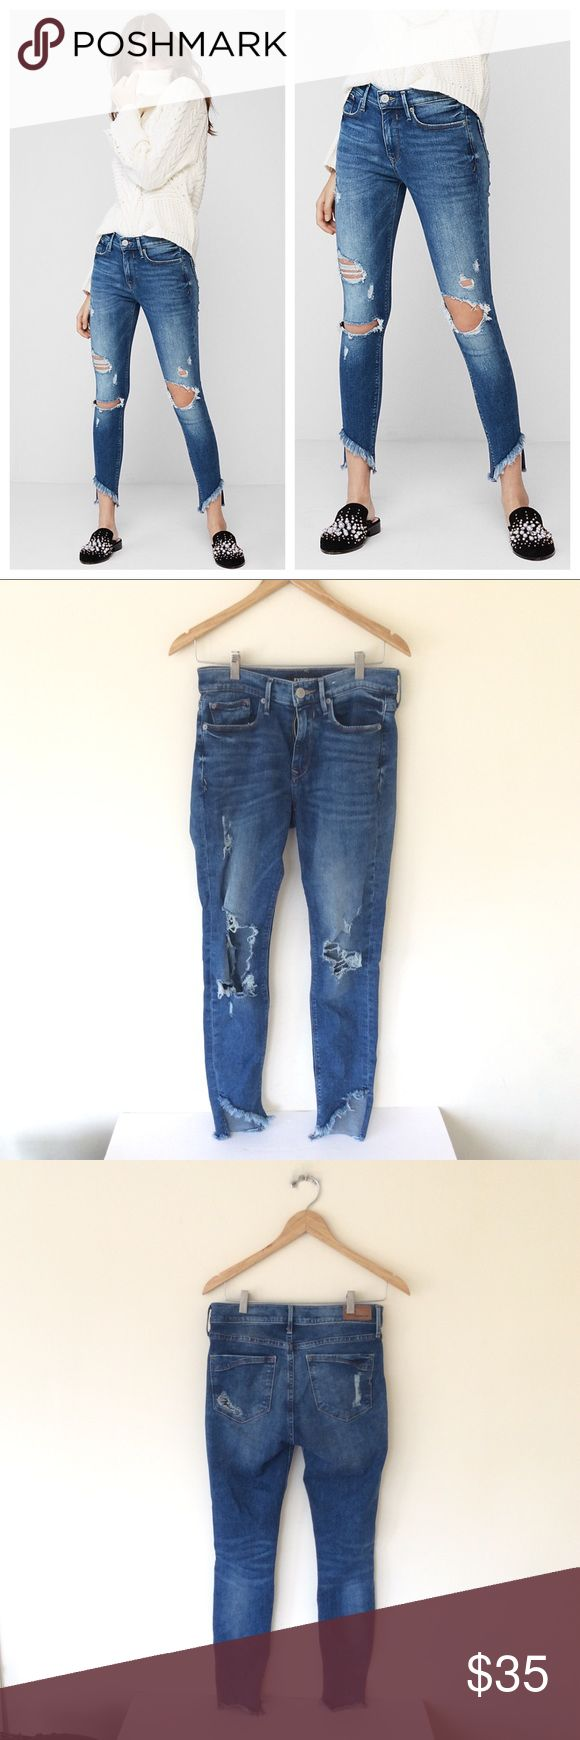 Express MidRise Distressed Ankle Stretch Jeans 4 Express MidRise Distressed Ankle Stretch Jeans 4 Express Jeans Skinny